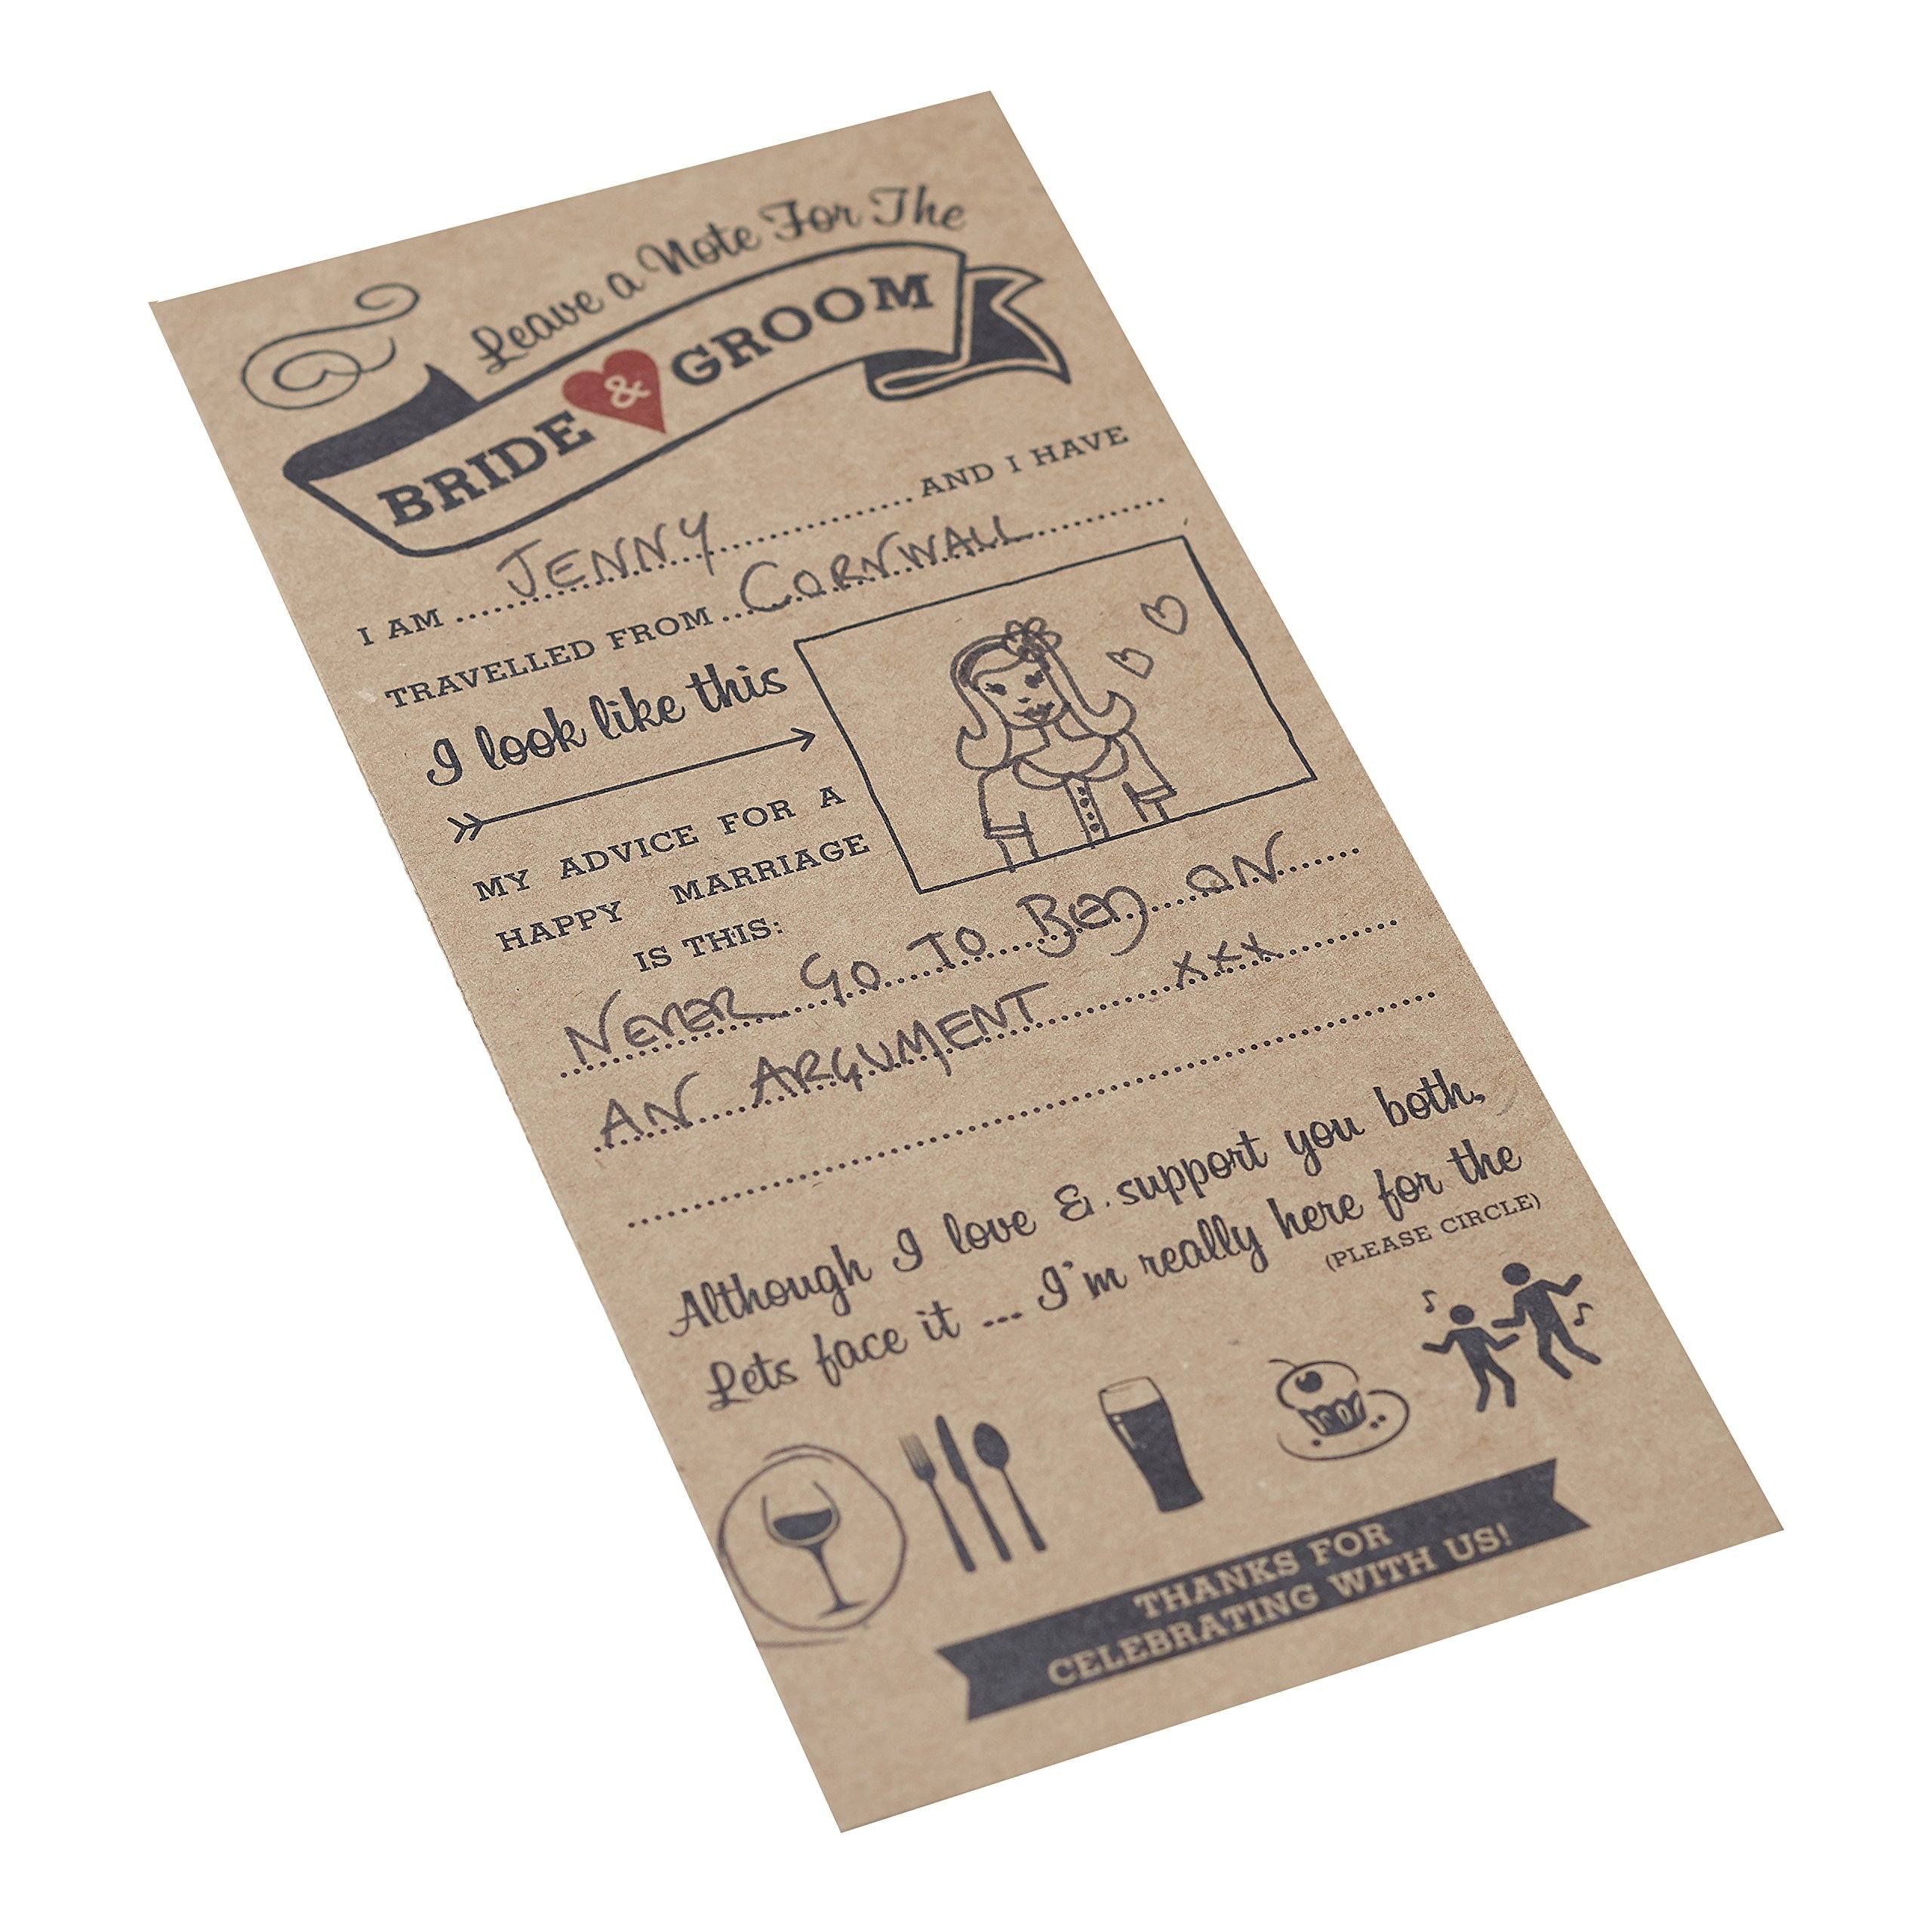 William & Douglas Ginger Ray Wedding Advice Cards for The Bride & Groom Wedding and Bridal Shower Party Games and Decoration (20 Pack)